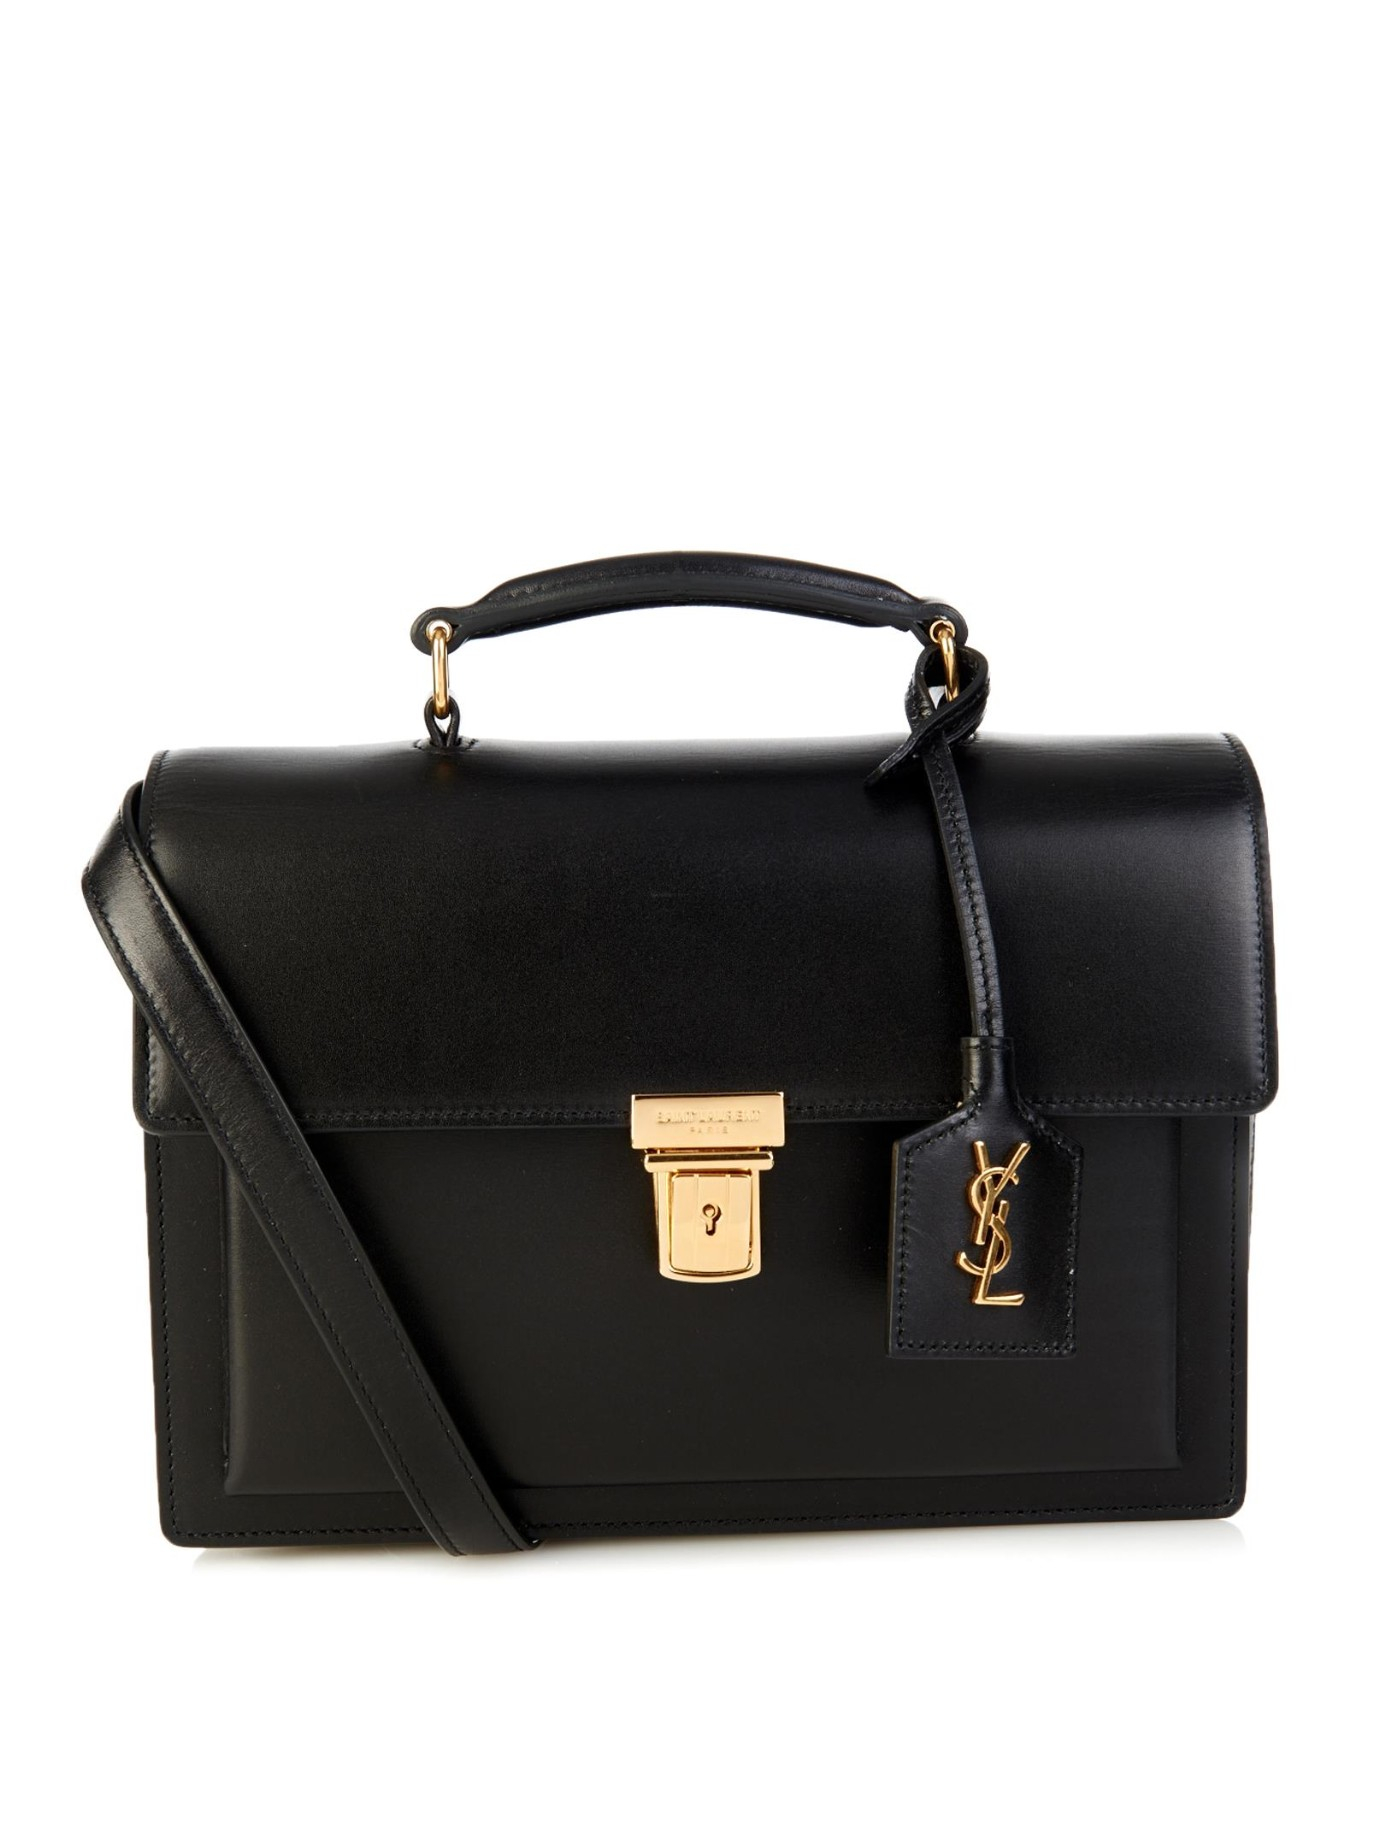 saint laurent high school medium leather shoulder bag in black lyst. Black Bedroom Furniture Sets. Home Design Ideas